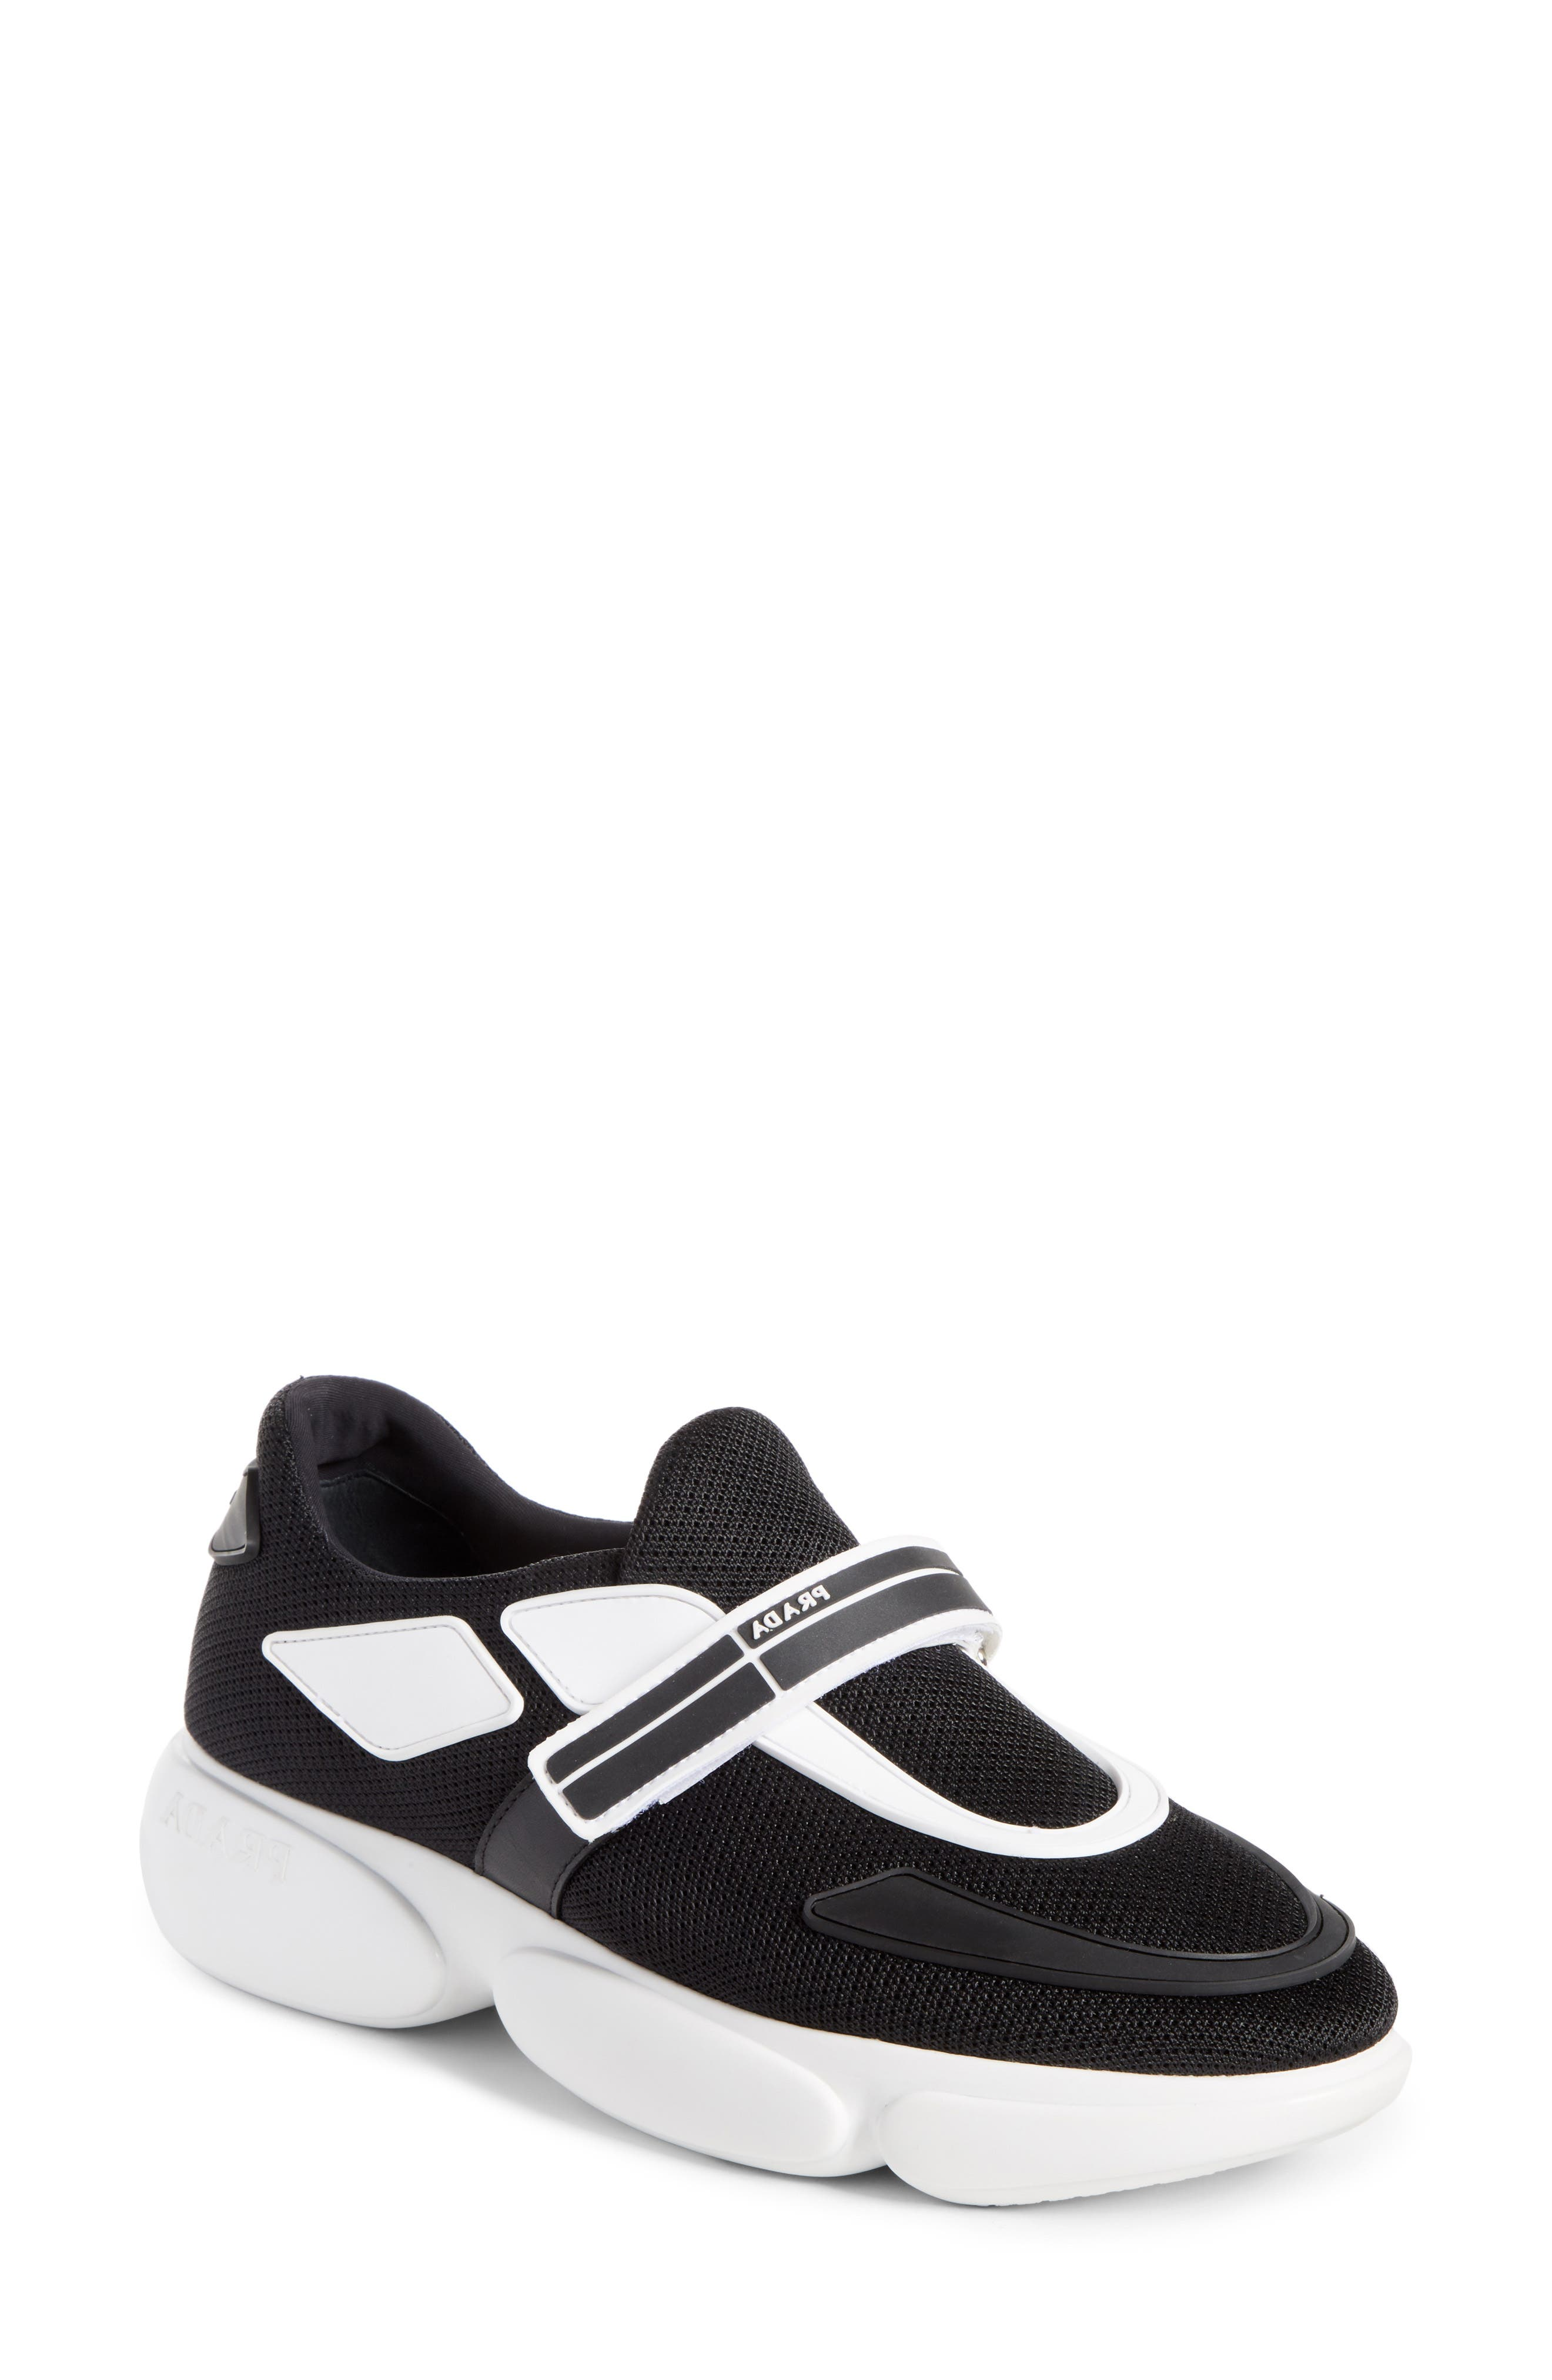 Slip on Sneakers for Women On Sale, White, Leather, 2017, 3.5 Prada